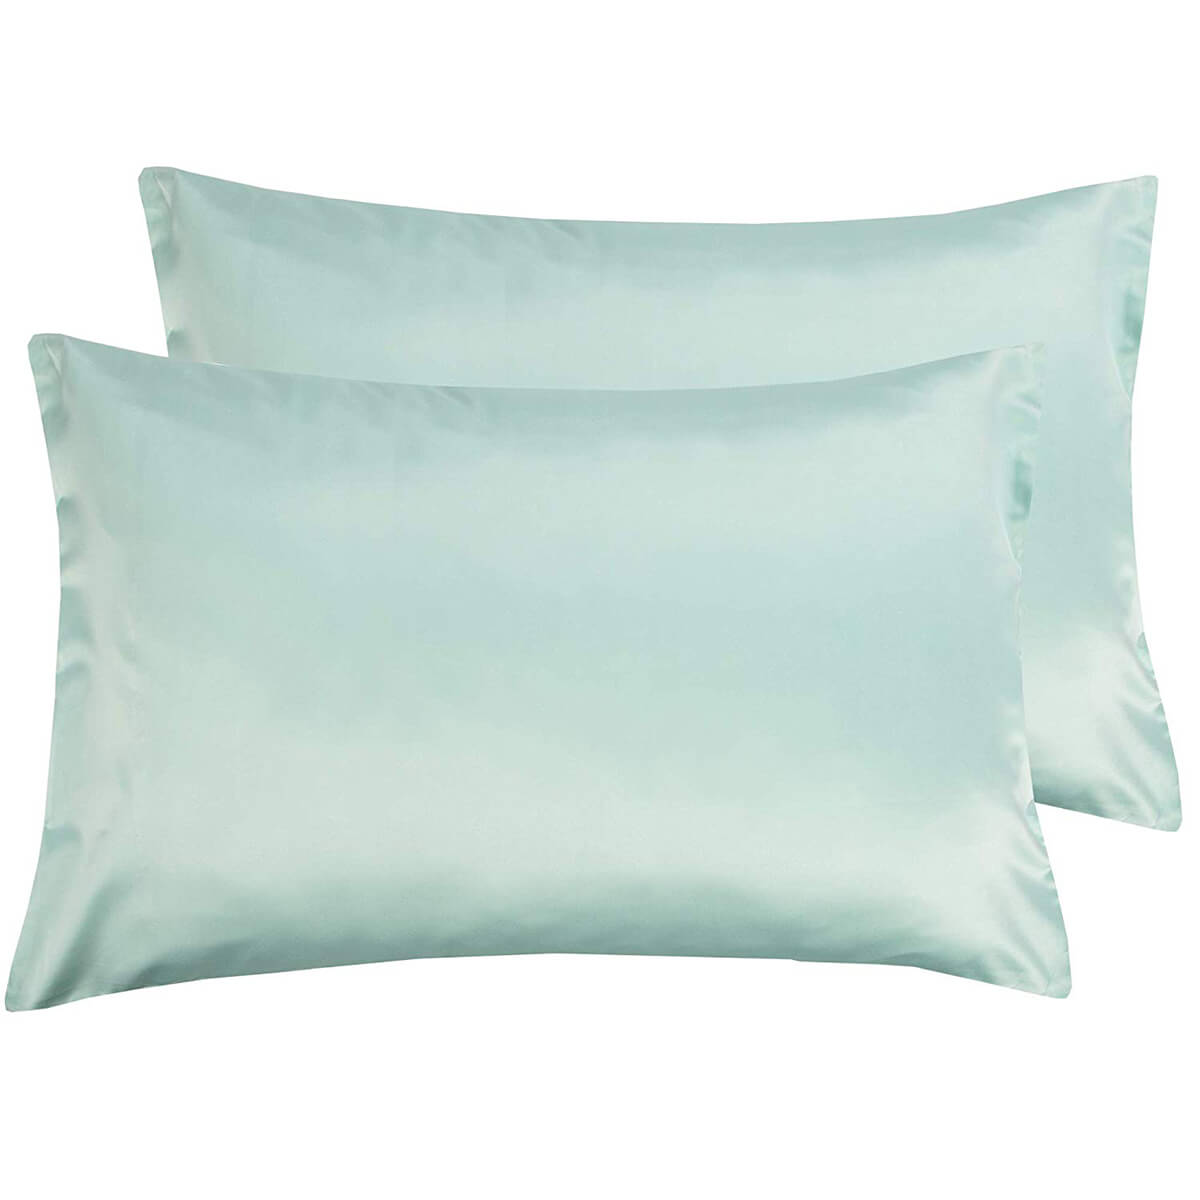 Silky Satin Pillowcases for Luxury and Design